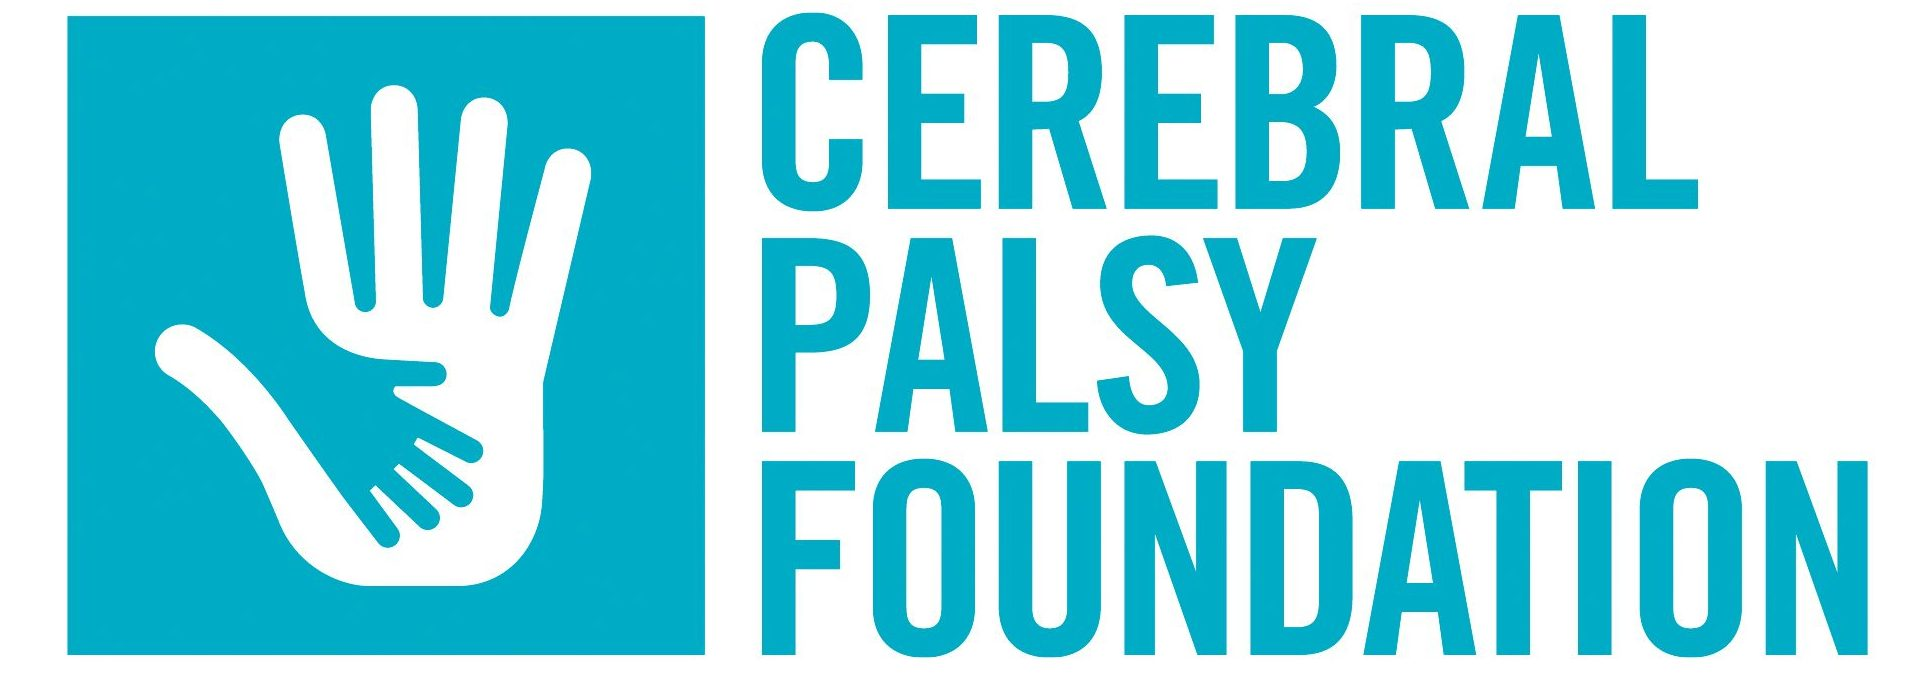 Cerebral-Palsy-Foundation-L